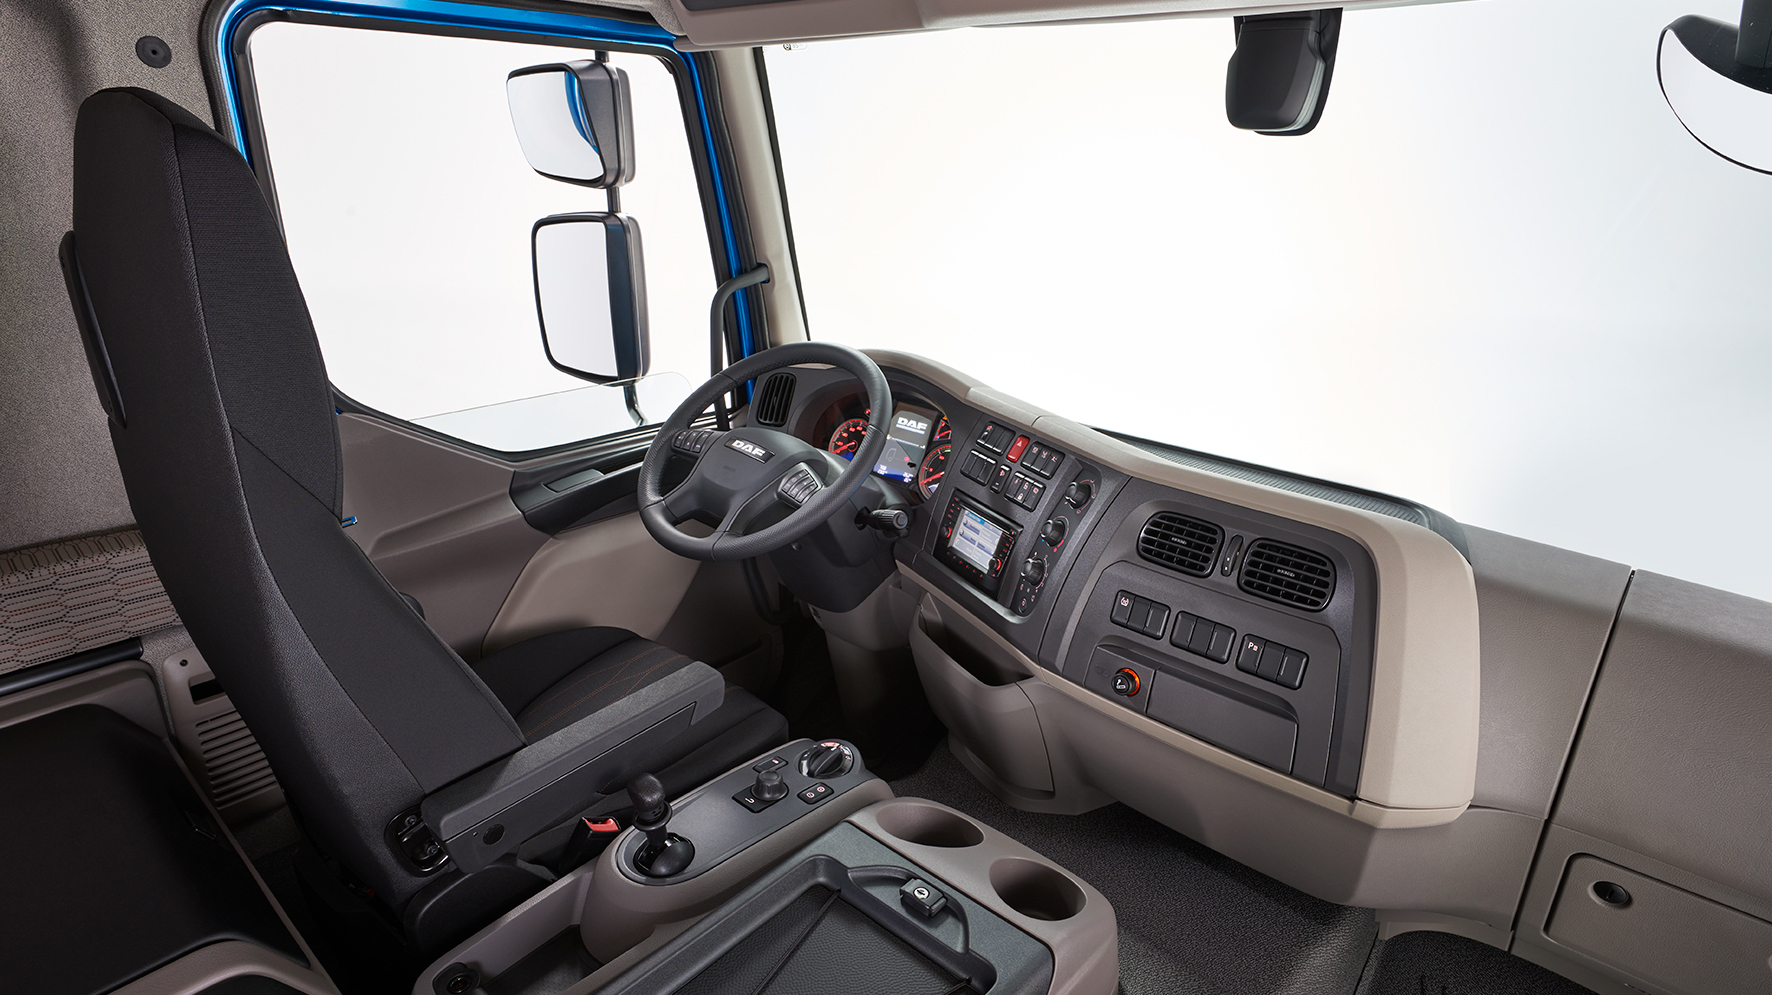 DAF-Introduces-New-LF-Interior-New-DAF-LF-04